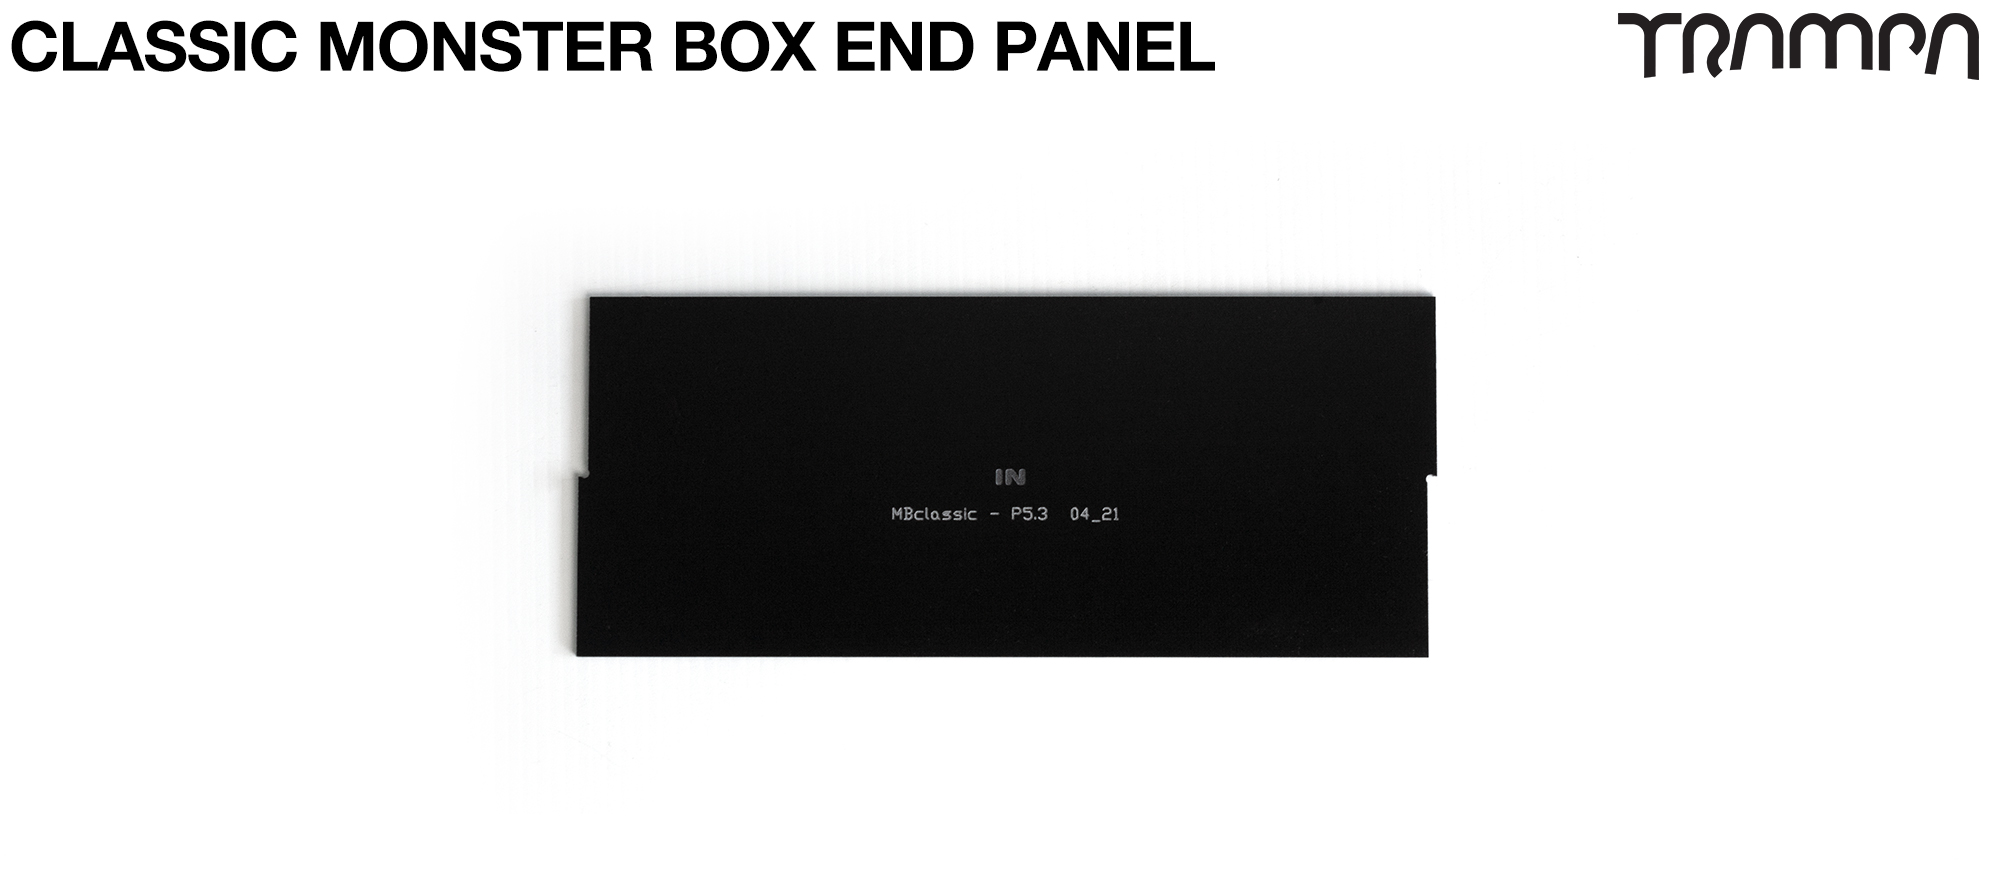 CLASSIC Monster Box MkIV 1x NO VESC Panel